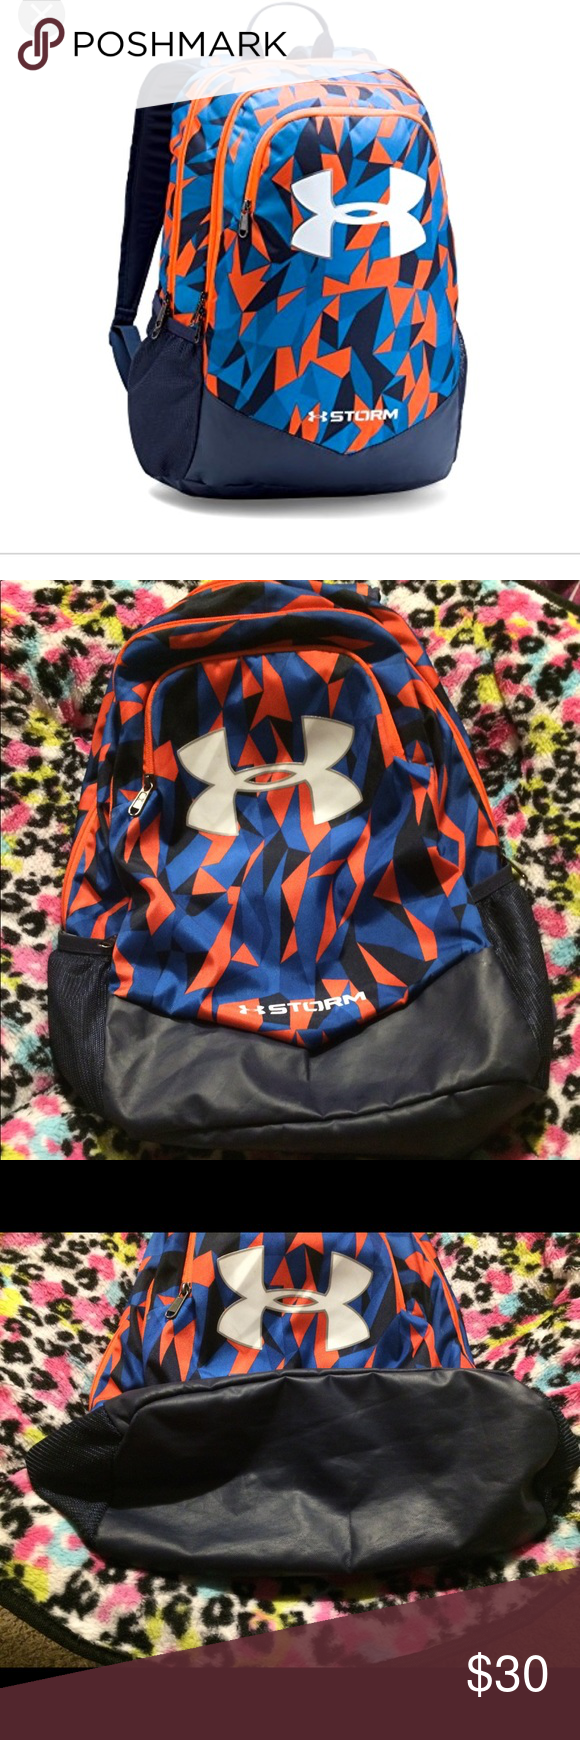 ♻️EUC Under Armour Backpack Boys Under Armour backpack. Great condition. No  stains. All zippers work. Navy and orange. Under Armour Accessories Bags fde3638d70